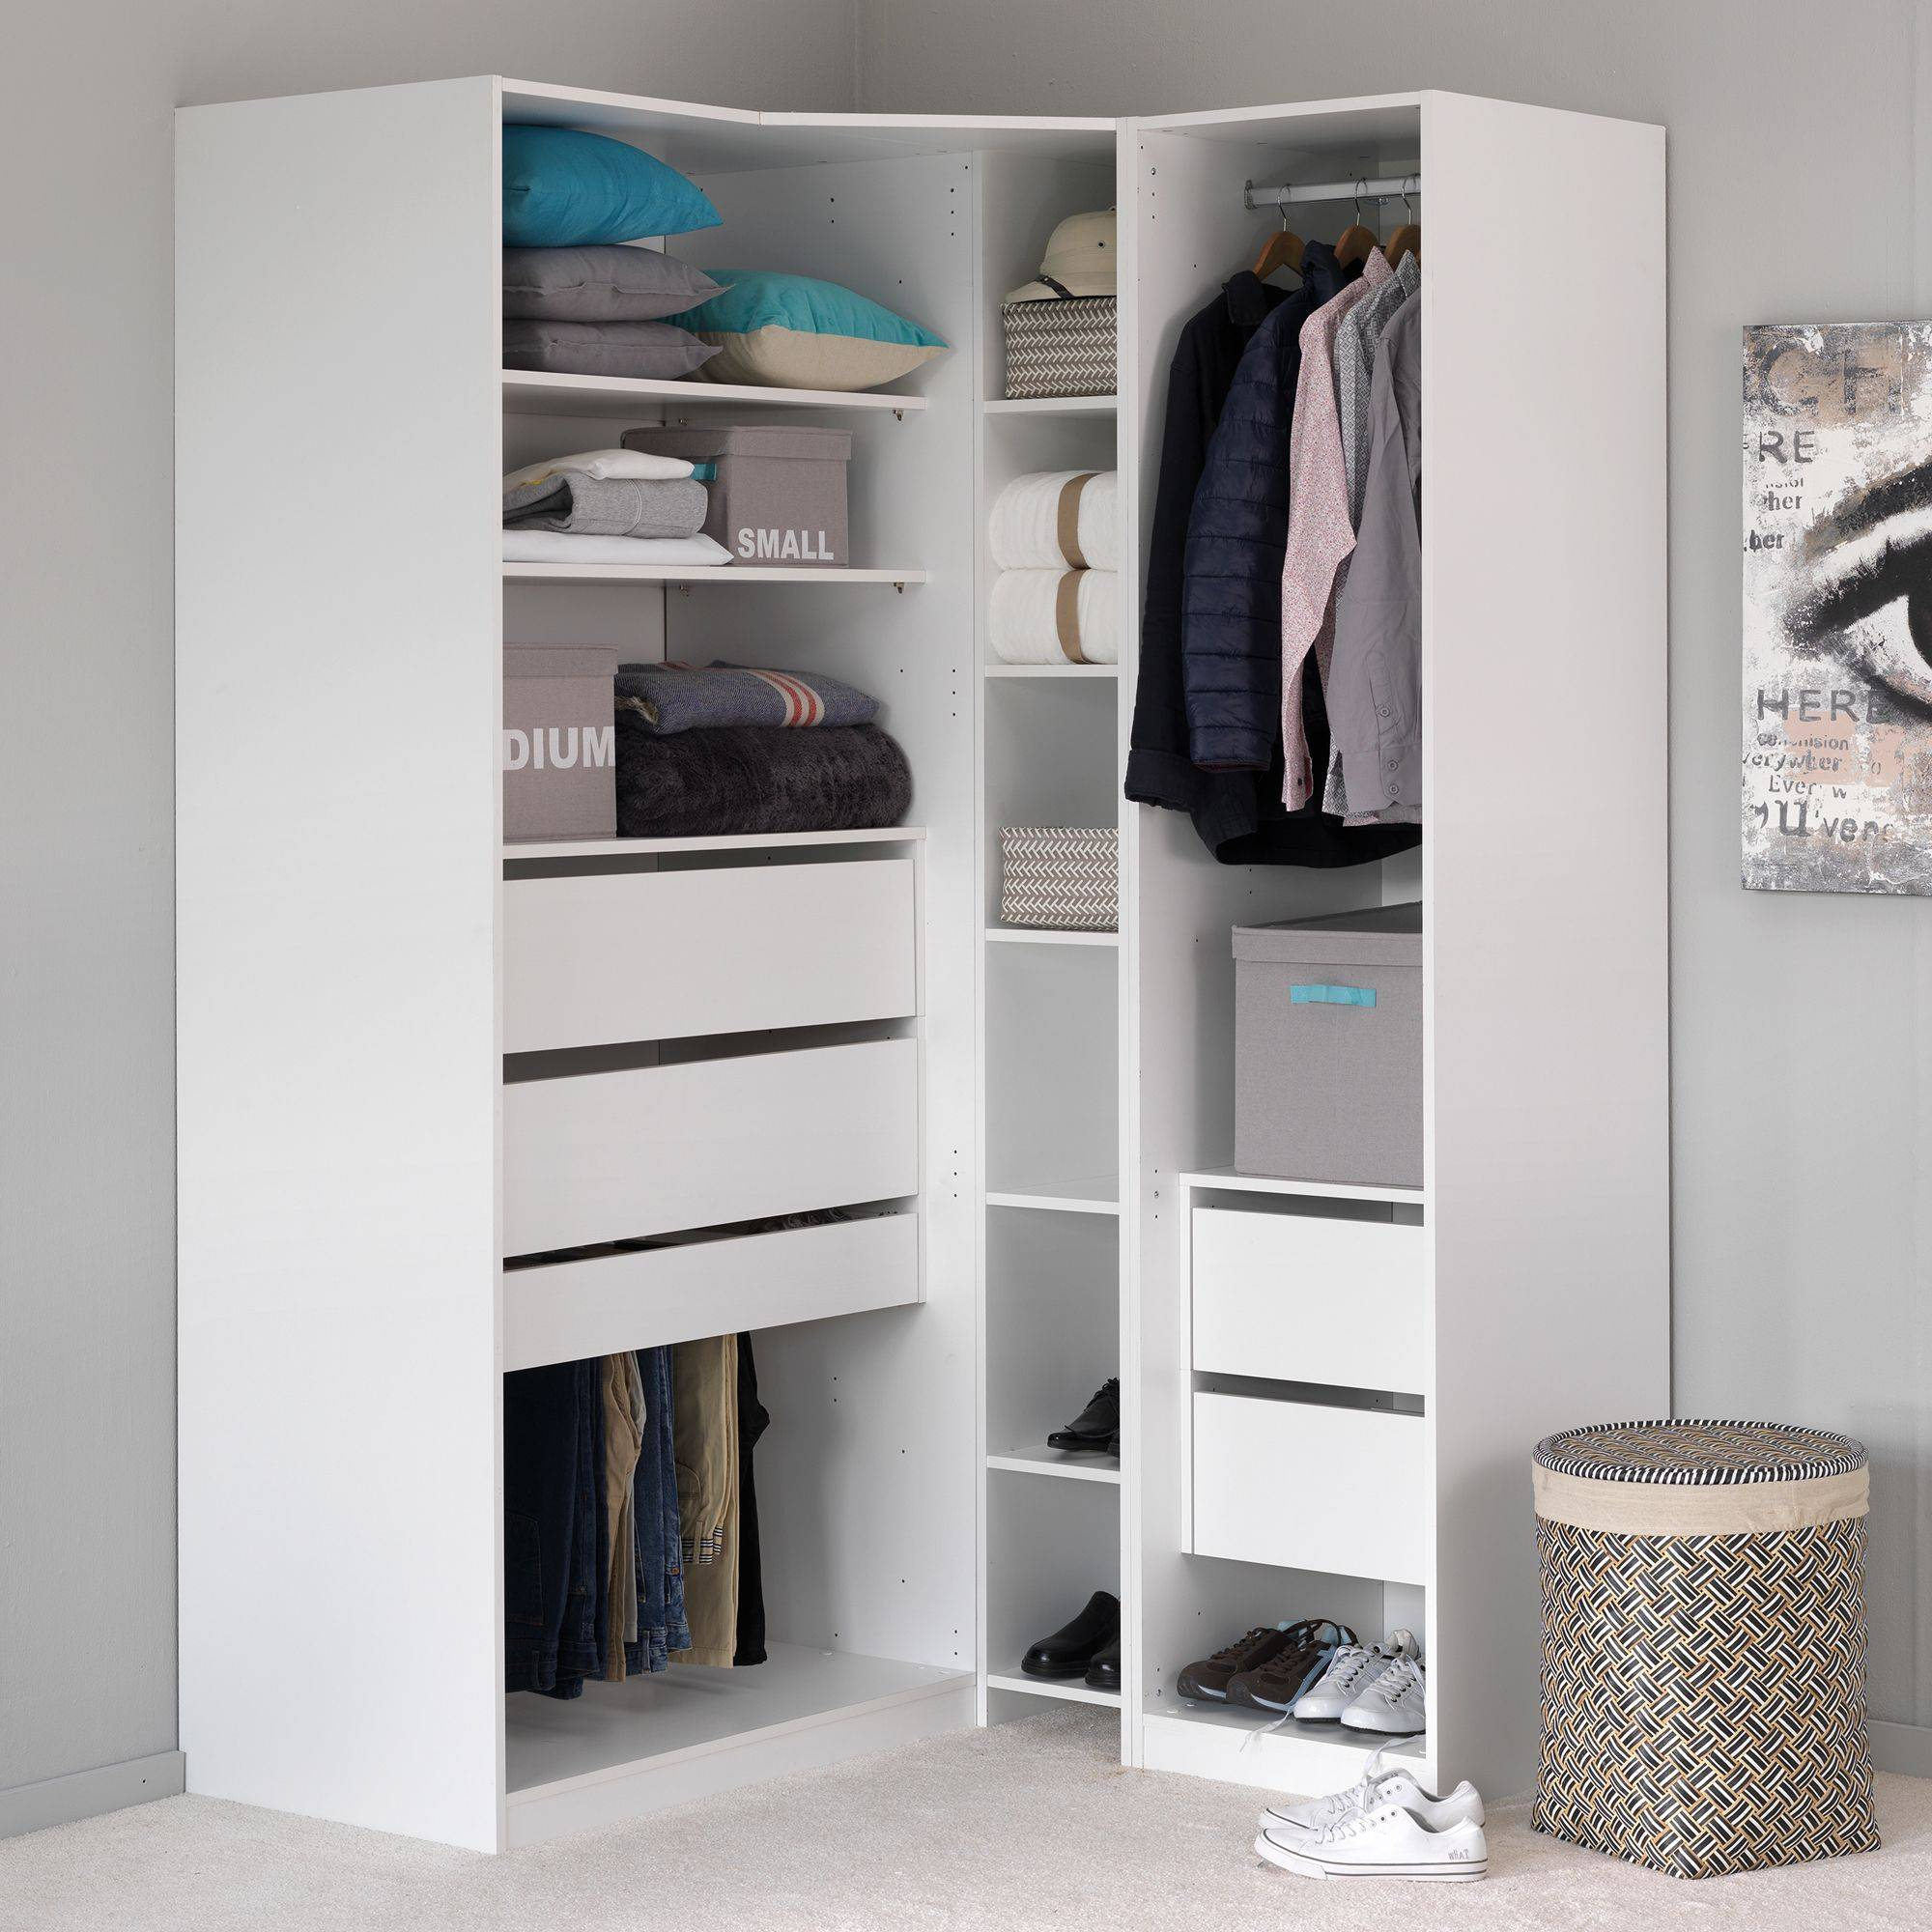 Comment bien am nager un dressing - Comment amenager un dressing ...